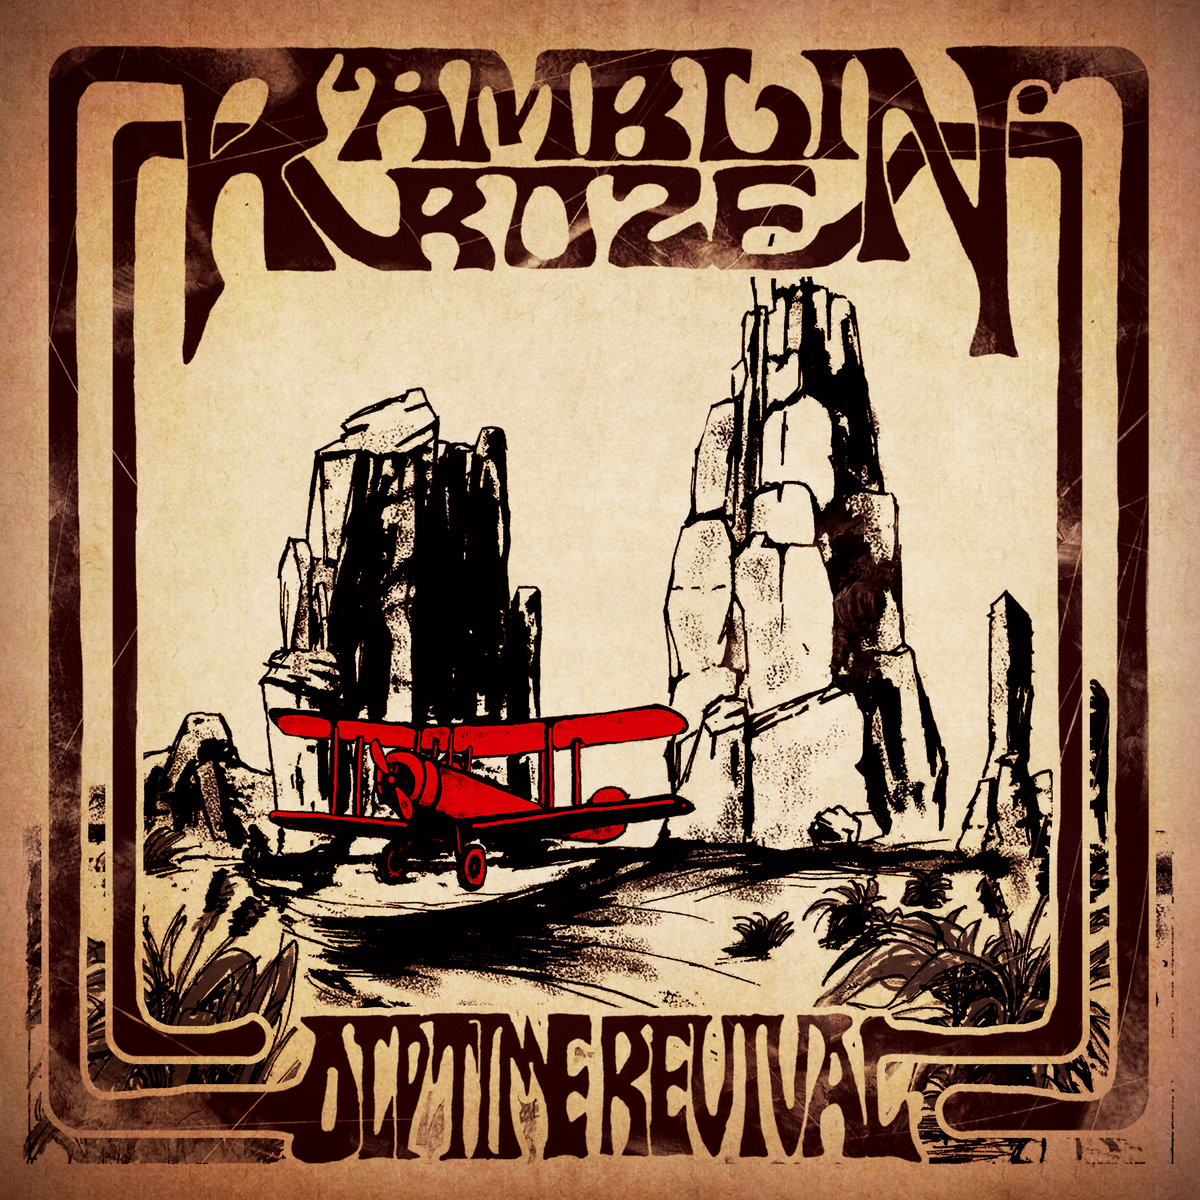 RAMBLIN' ROZE - Old Time Revival (EP) (2019) China